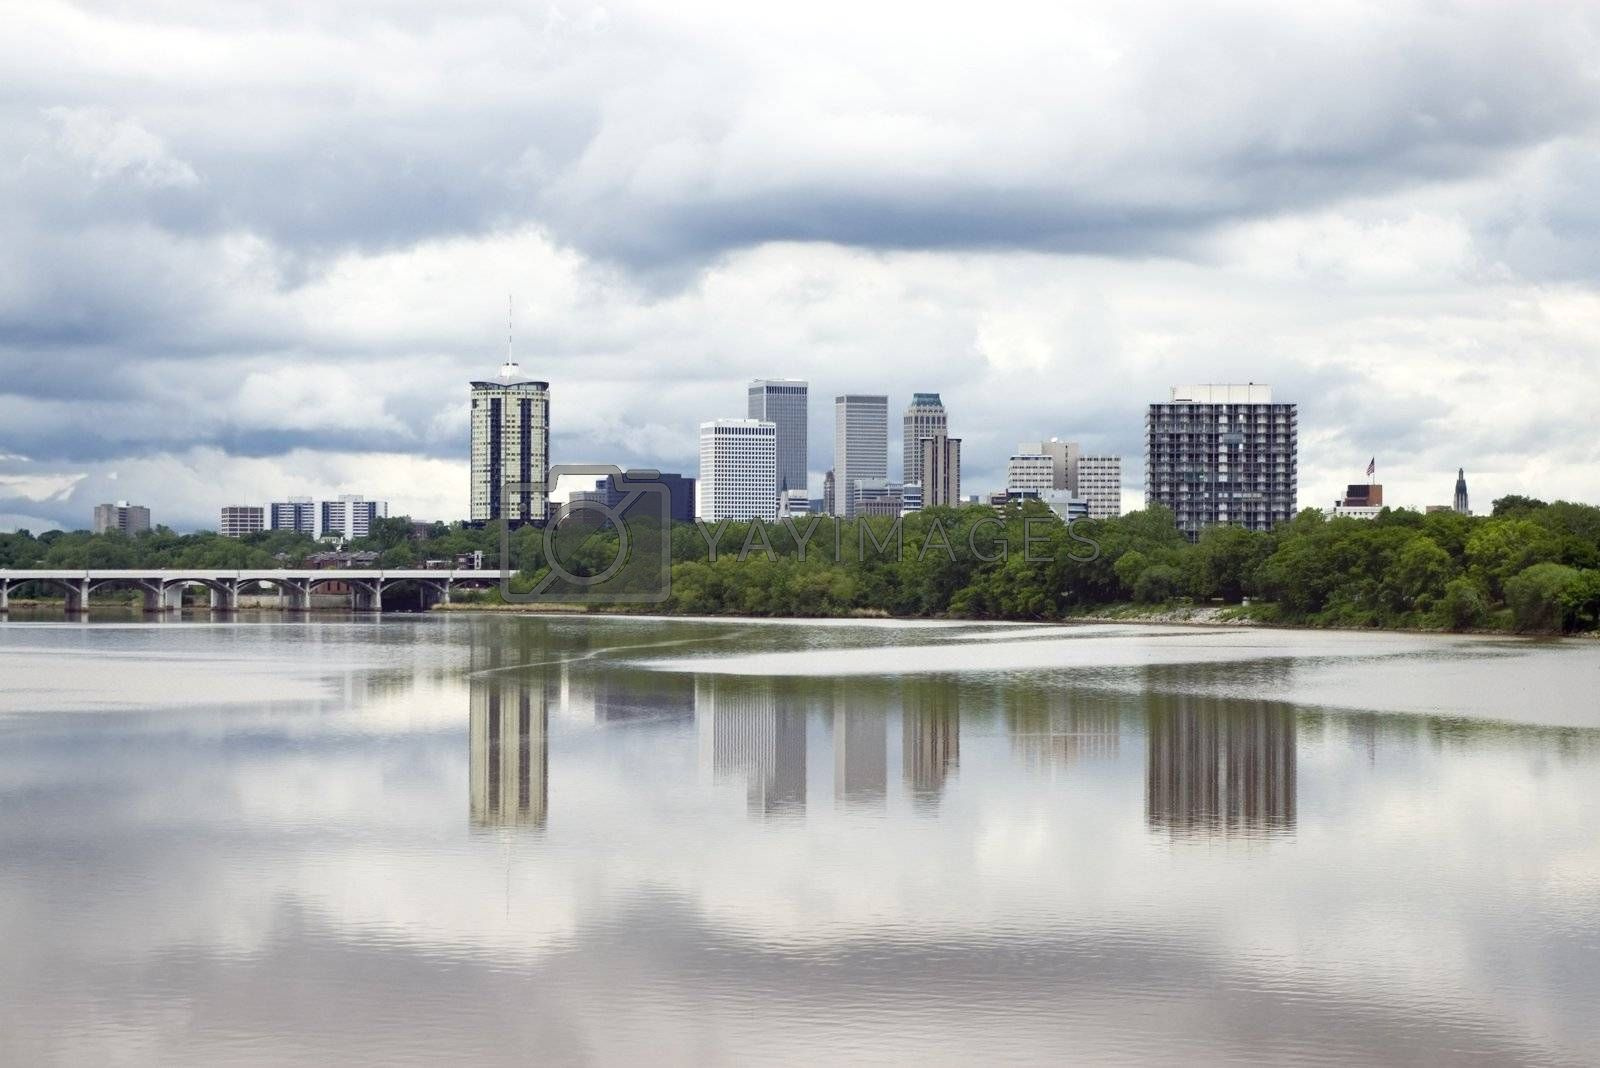 Stormy skyline of the city of Tulsa just before a severe spring storm, mirrored by its reflection in the Arkansas River.